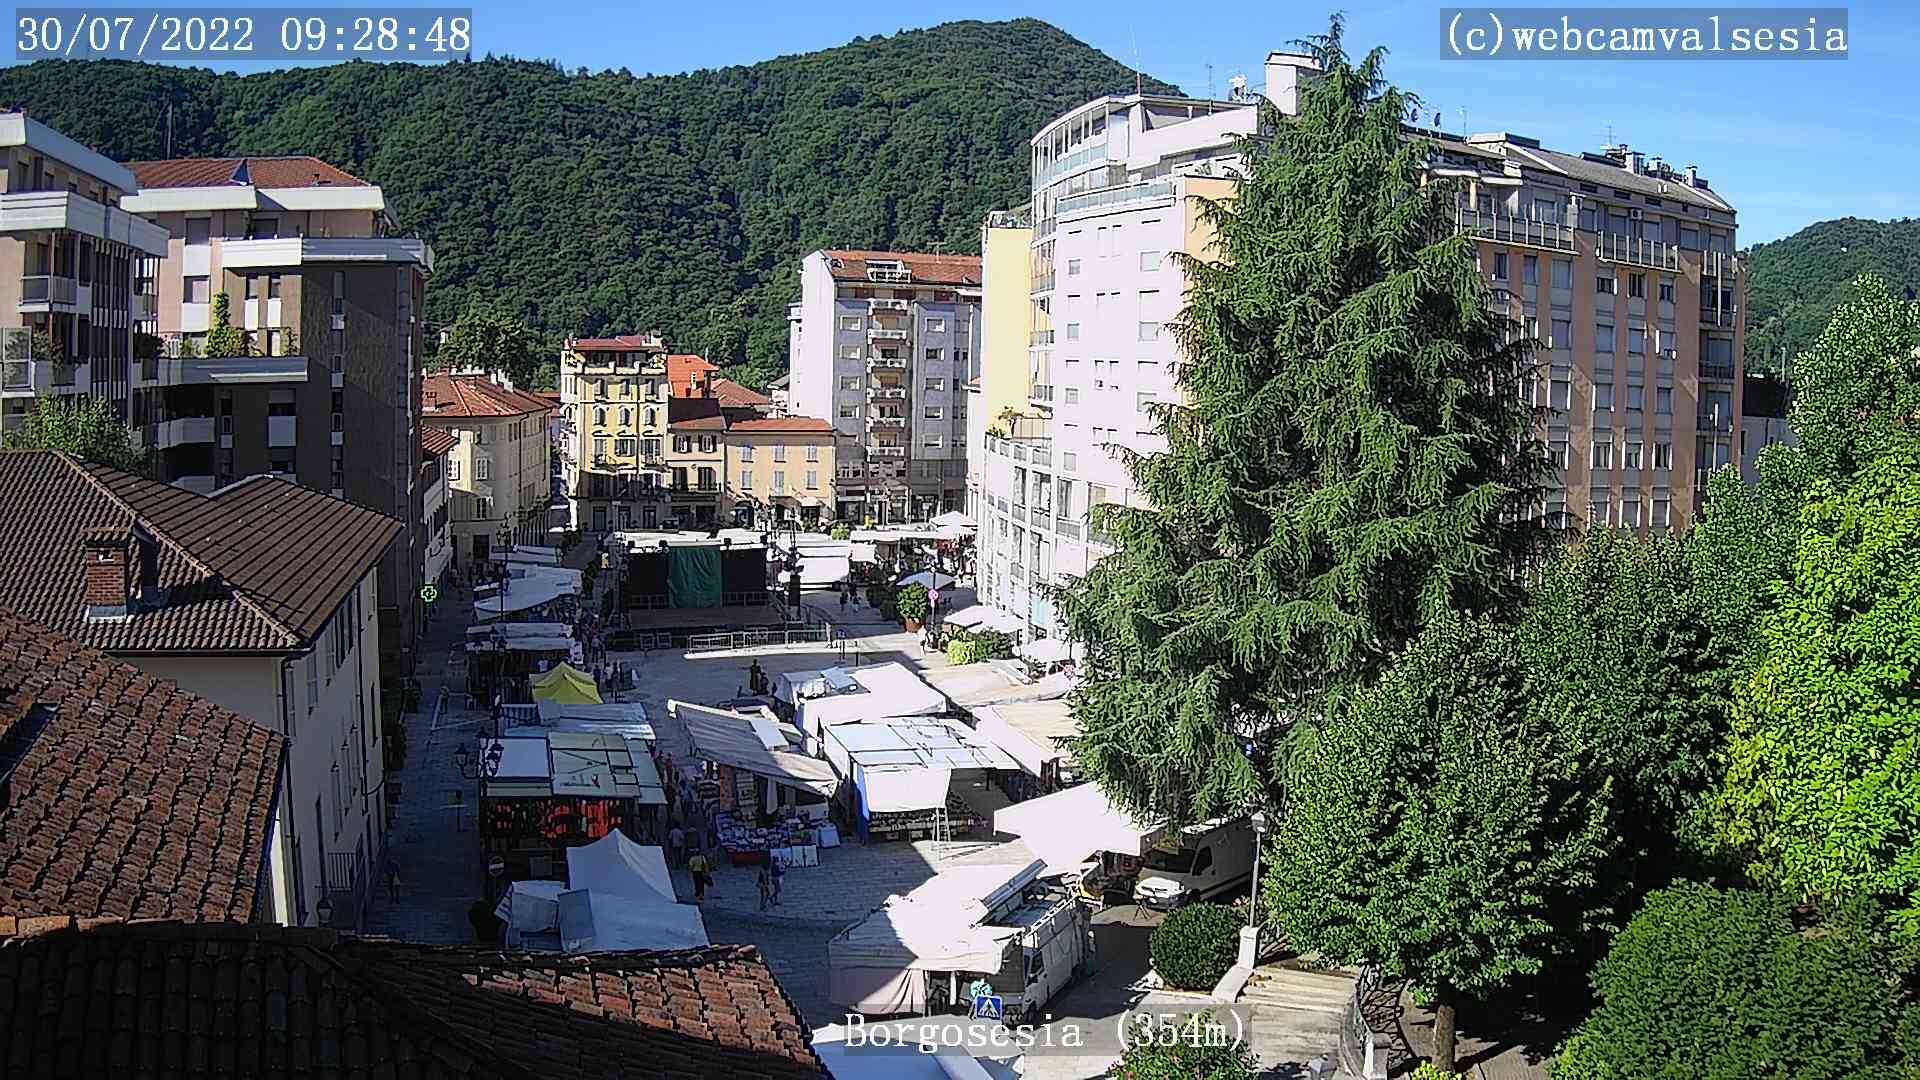 webcam valsesia Borgosesia